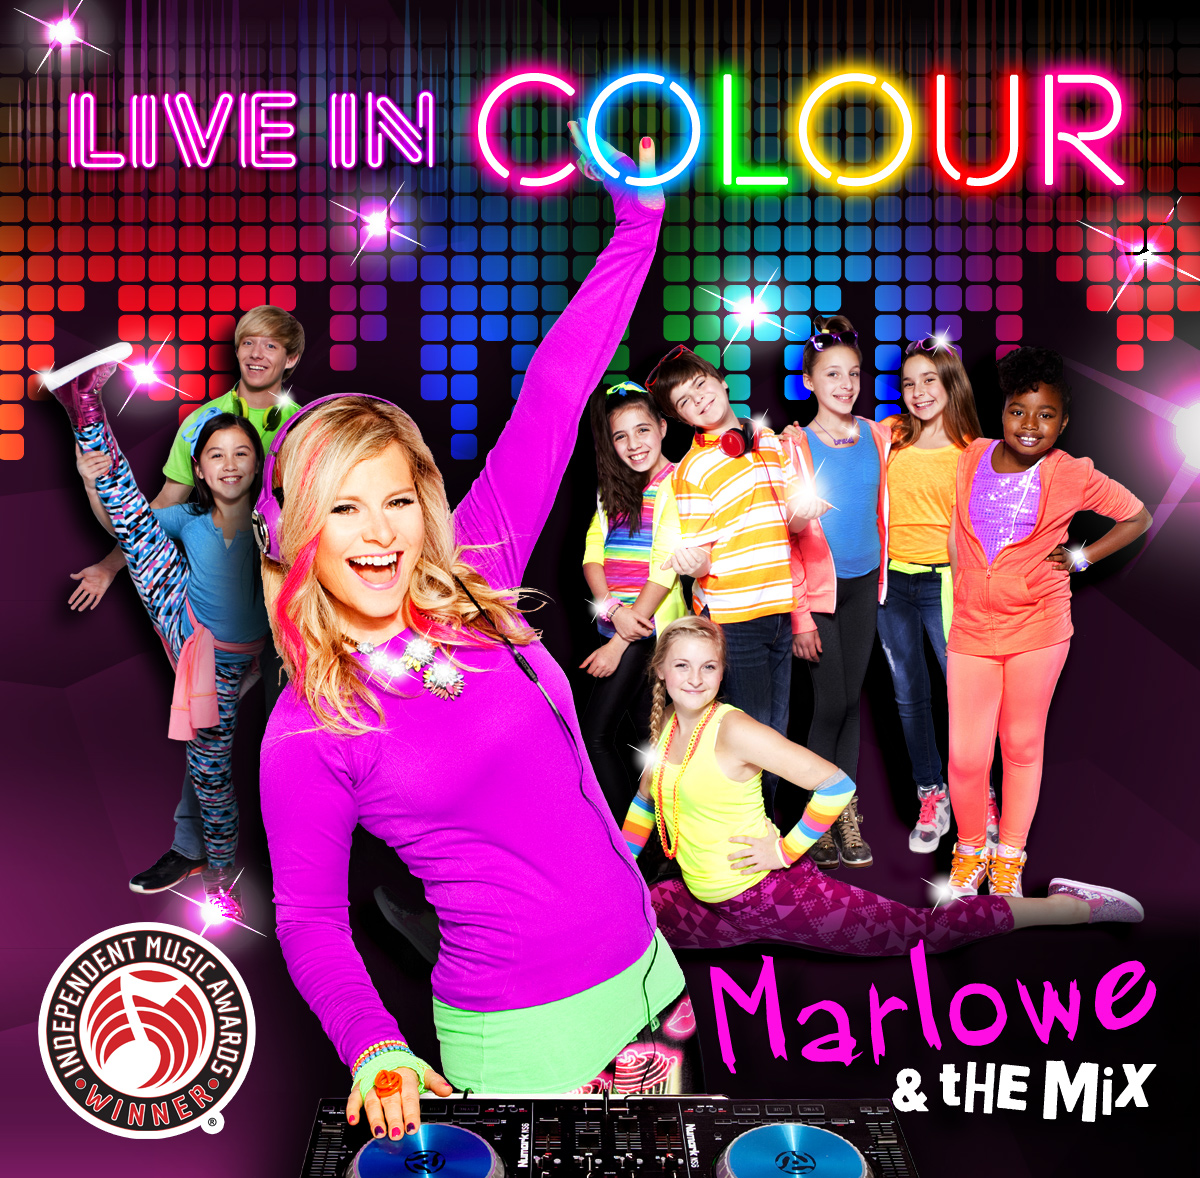 Marlowe & the Mix - Live In Colour